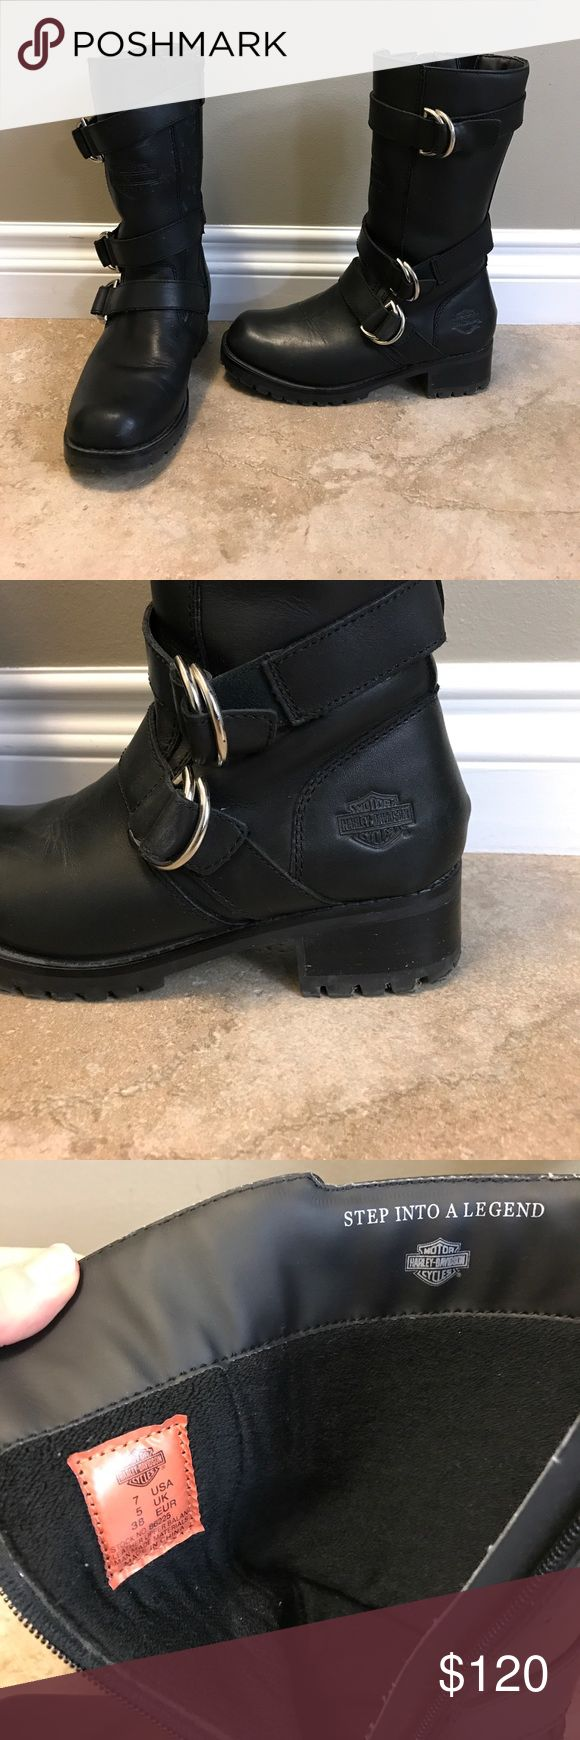 Women's Harley boots Leather Harley Davidson boots. Some water marks on inside of right boot near the zipper (may be able to have removed). VERY comfortable. Will be sad to let go of these! Harley-Davidson Shoes